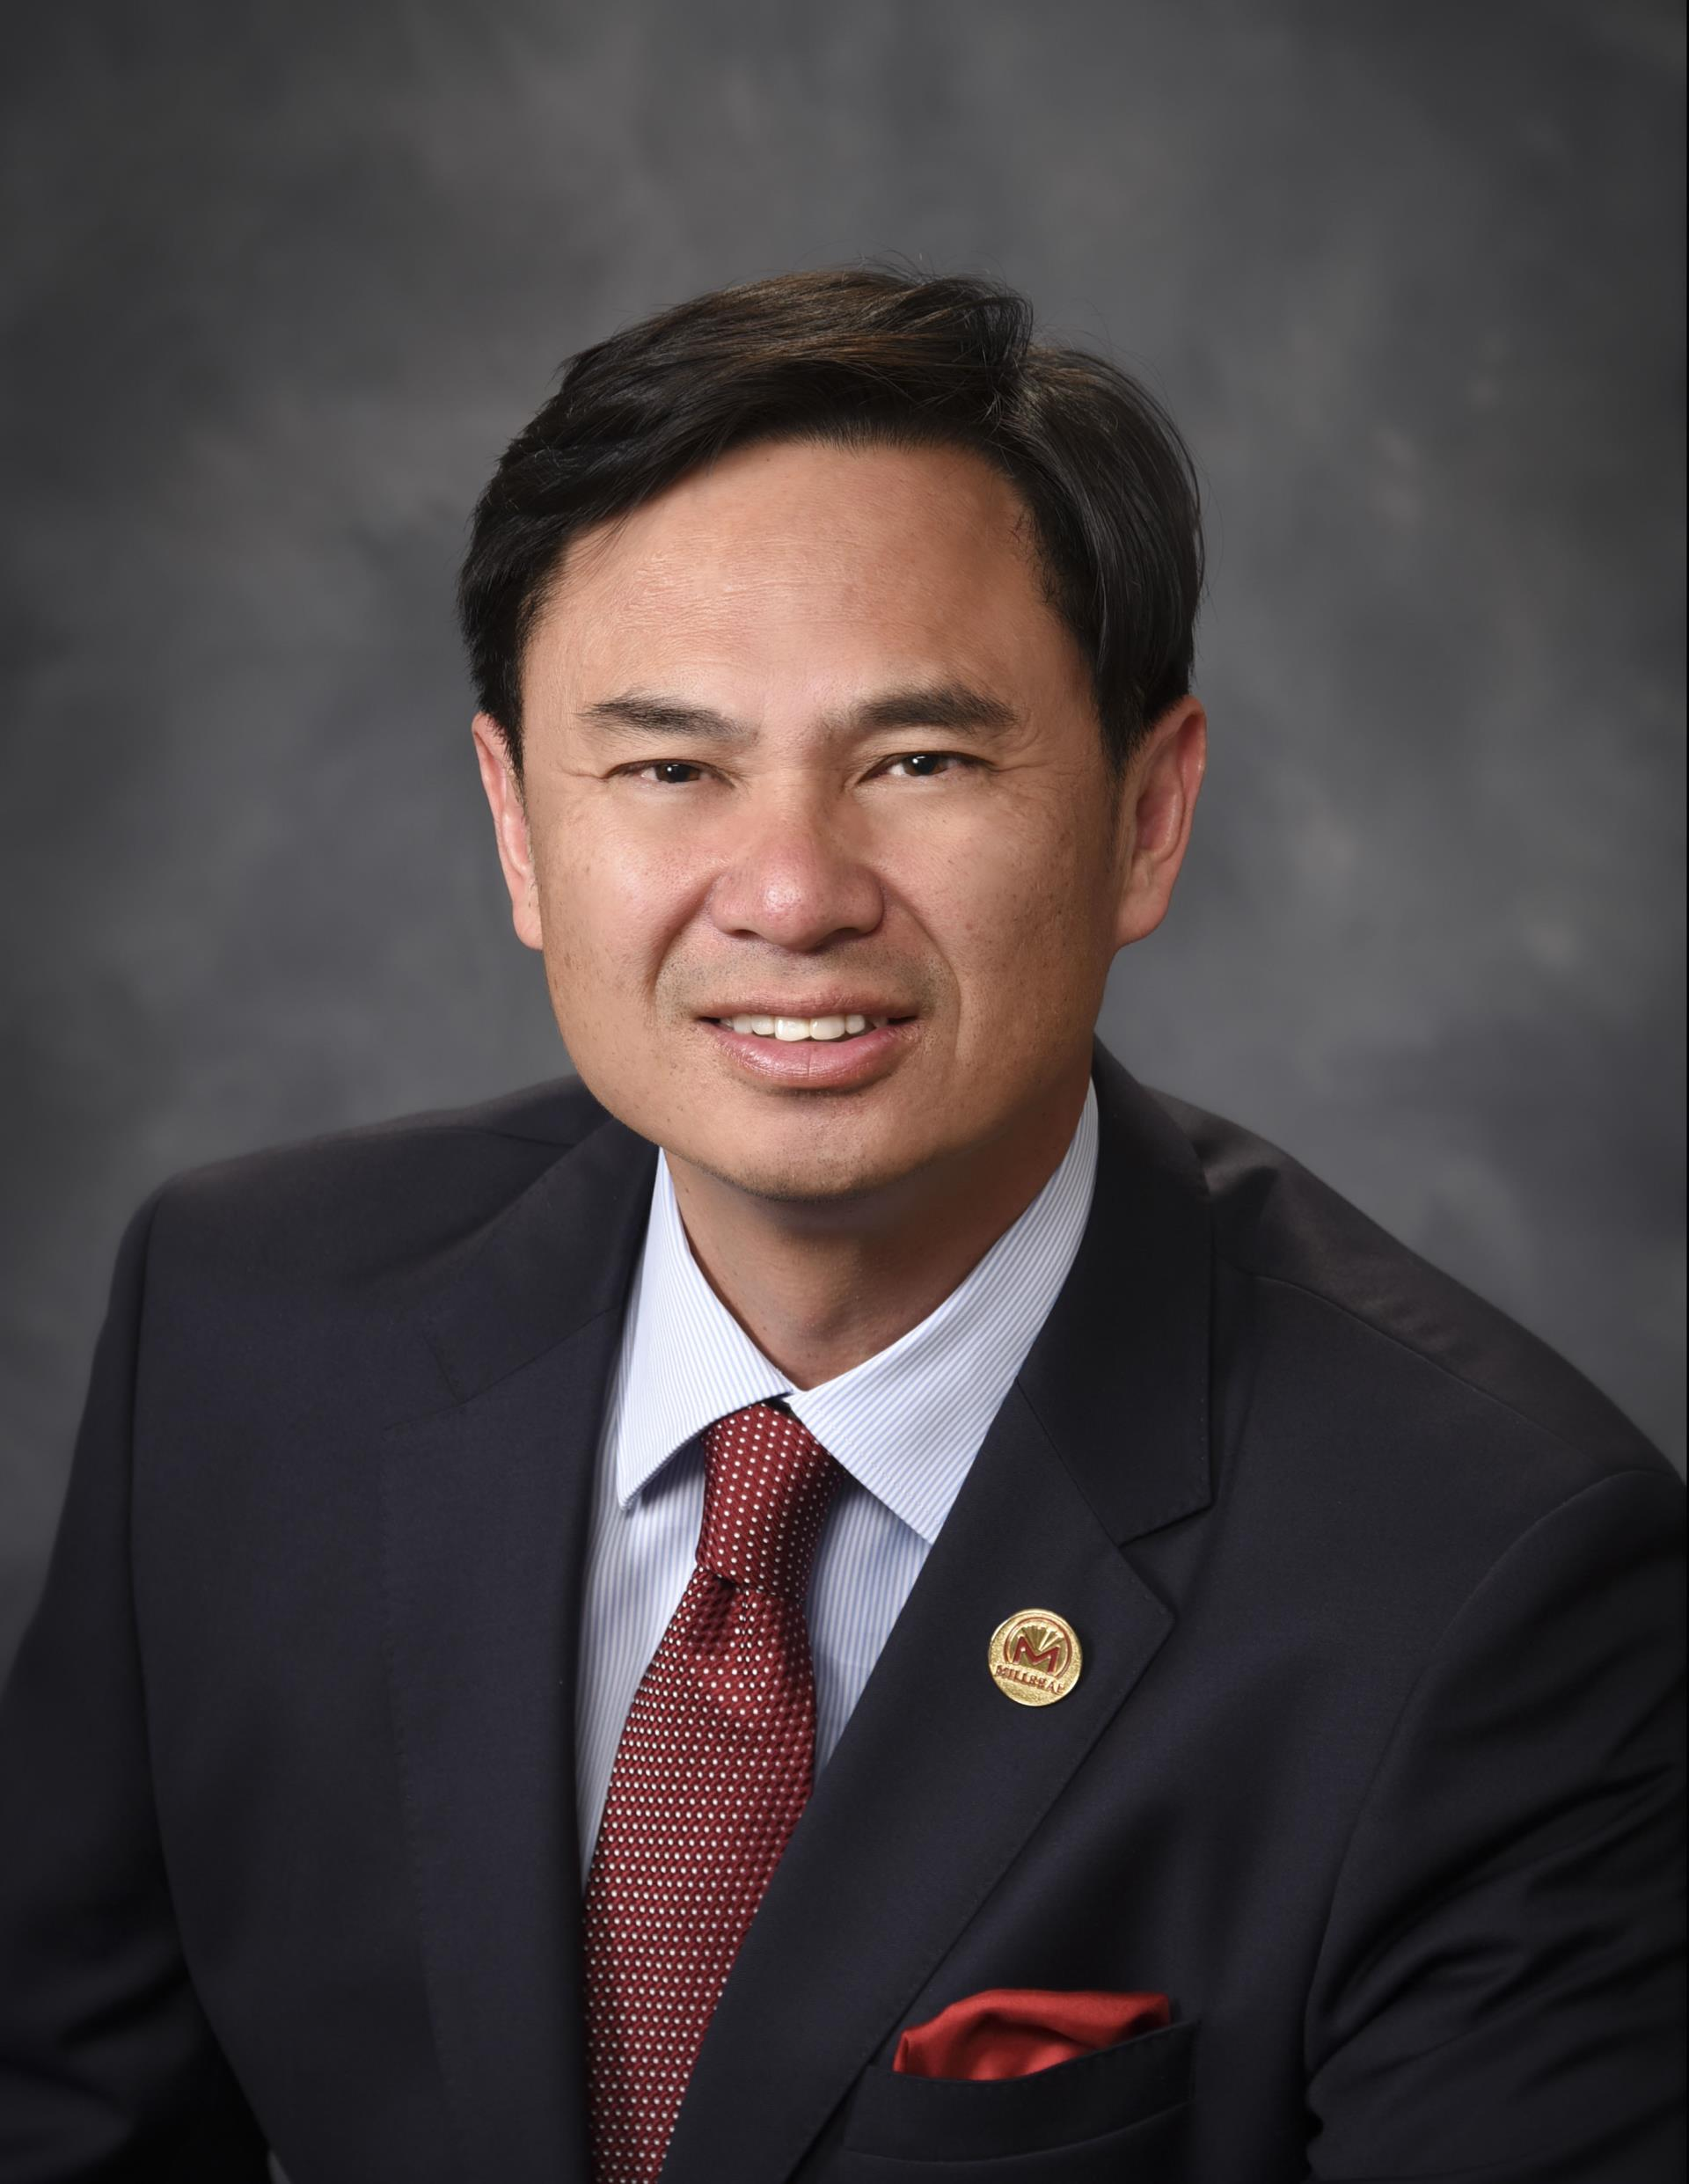 Mayor Wayne Lee